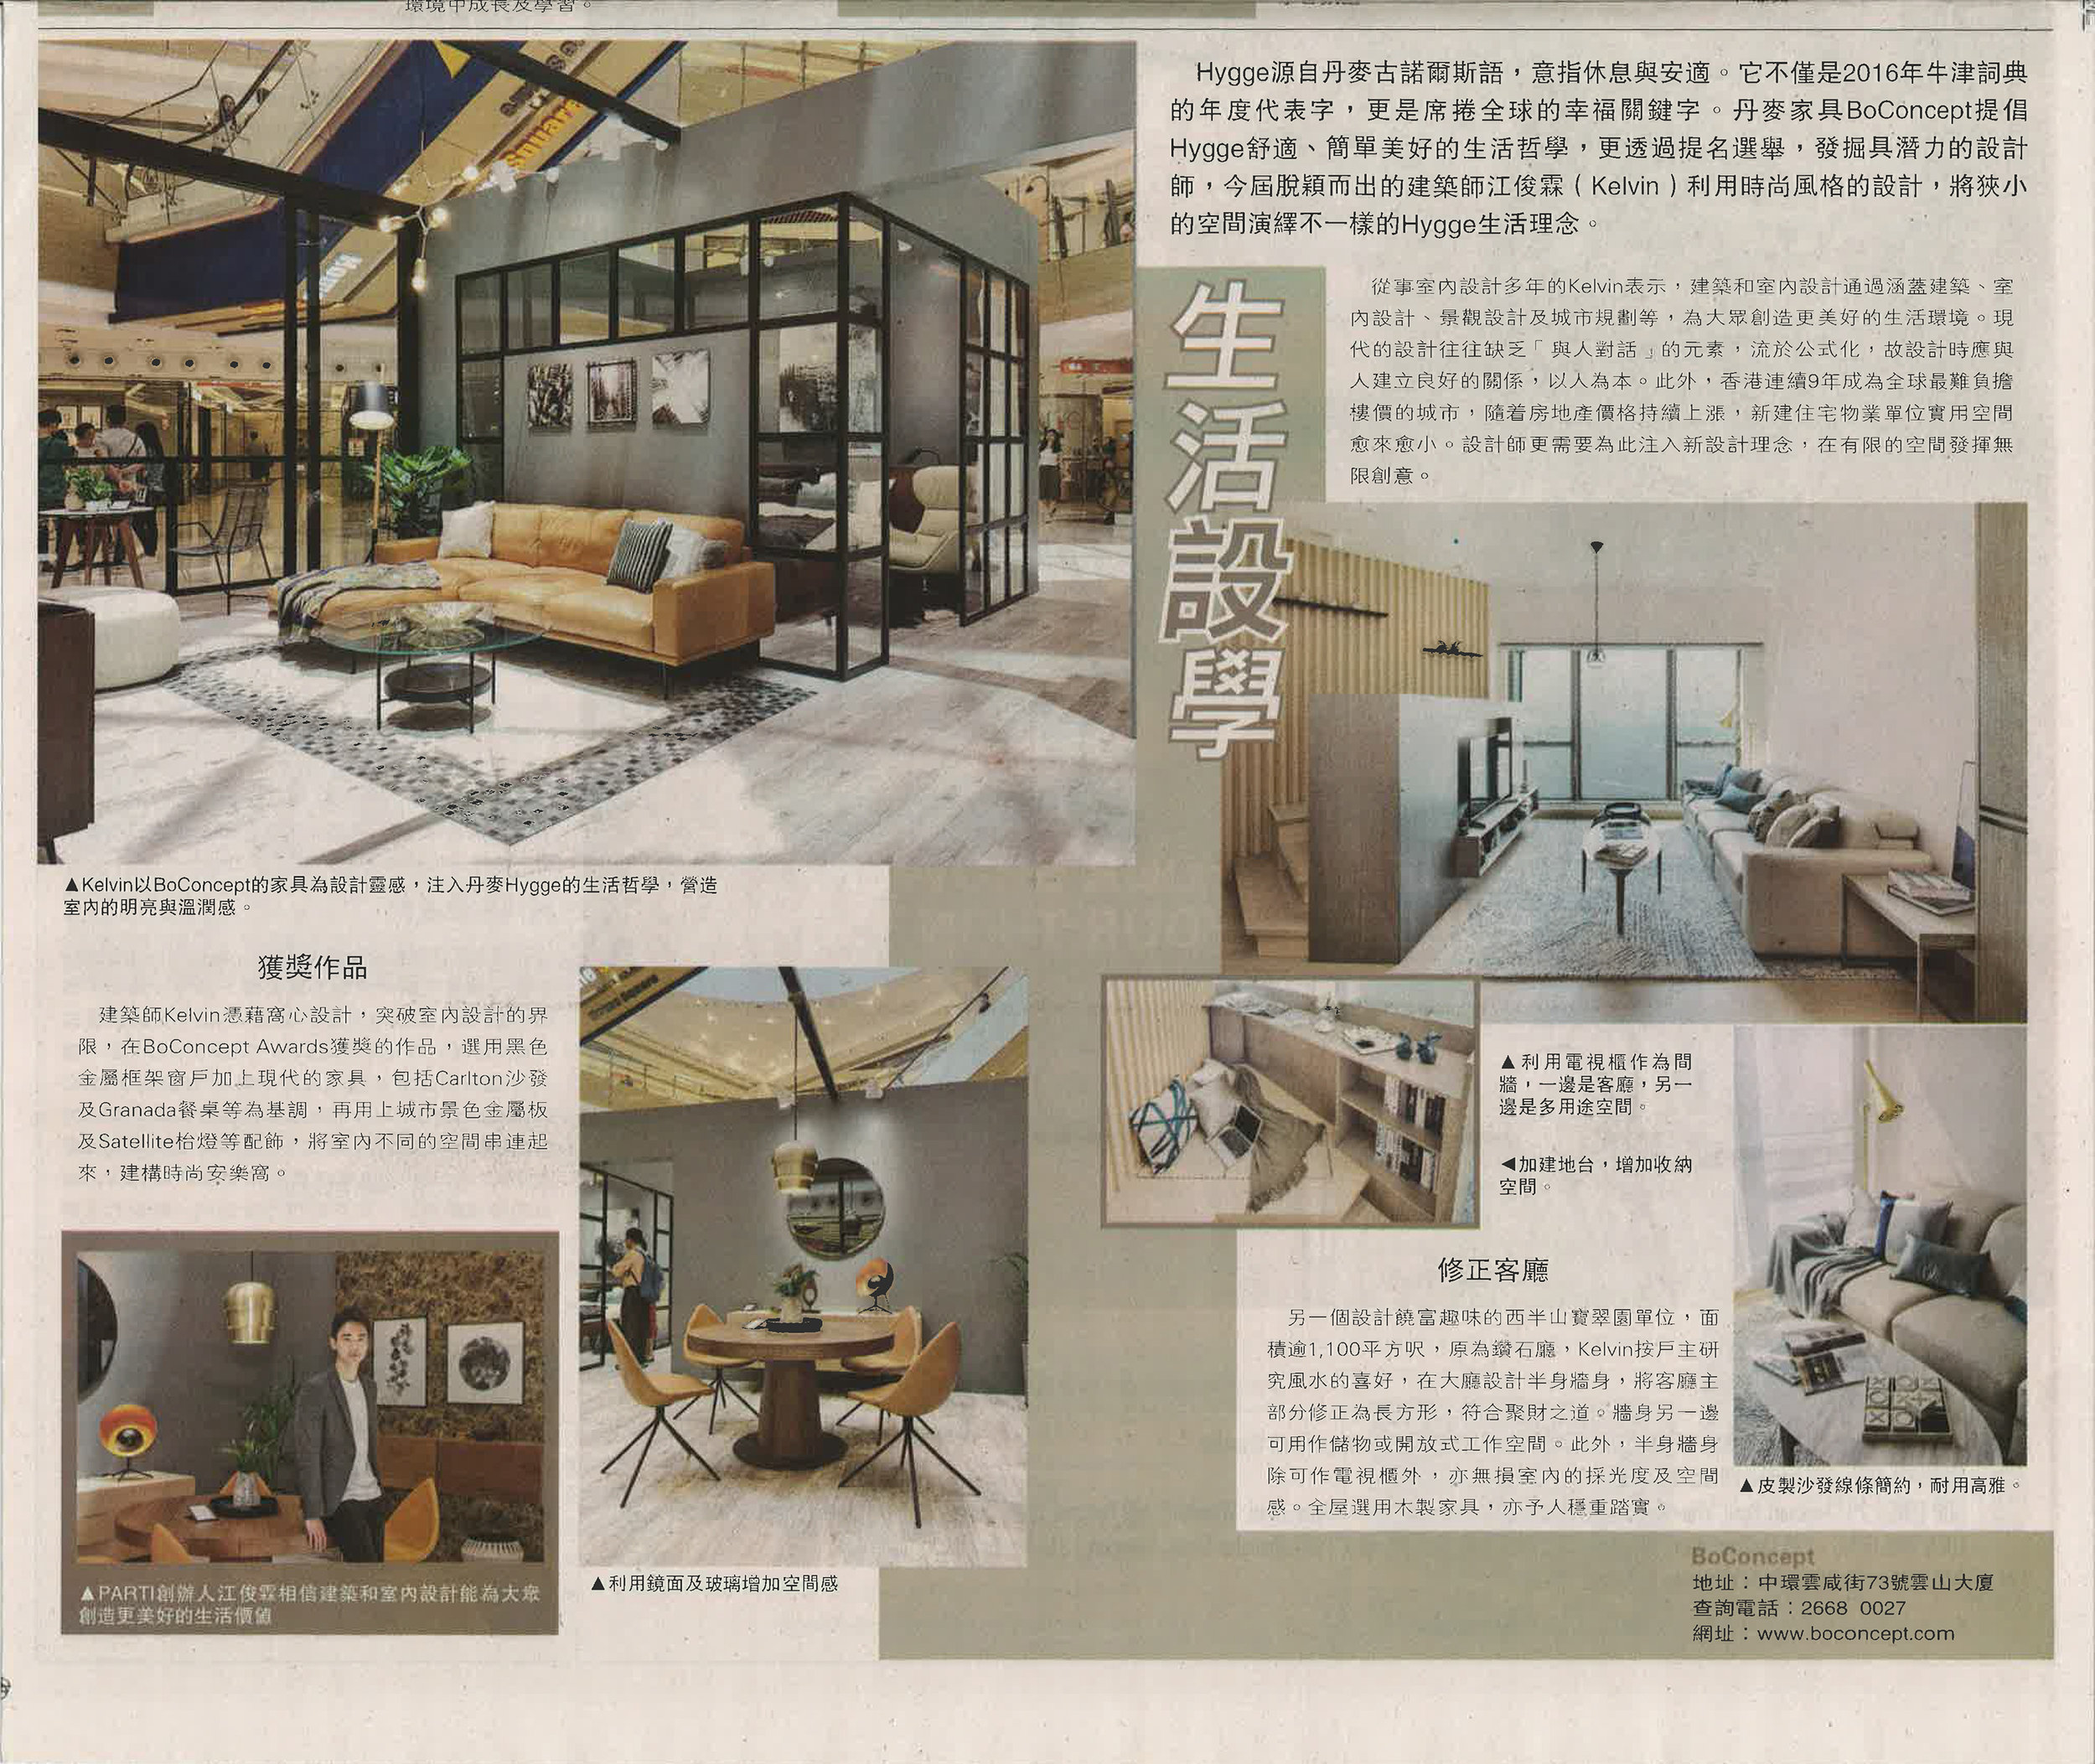 July 12, 2019 - Thank you Ming Pao Newspaper for featuring us on July 12, 2019's issue. We get to showcase our winning design for the inaugural BoConcept Awards and one of our earliest completed projects - The Belcher's!